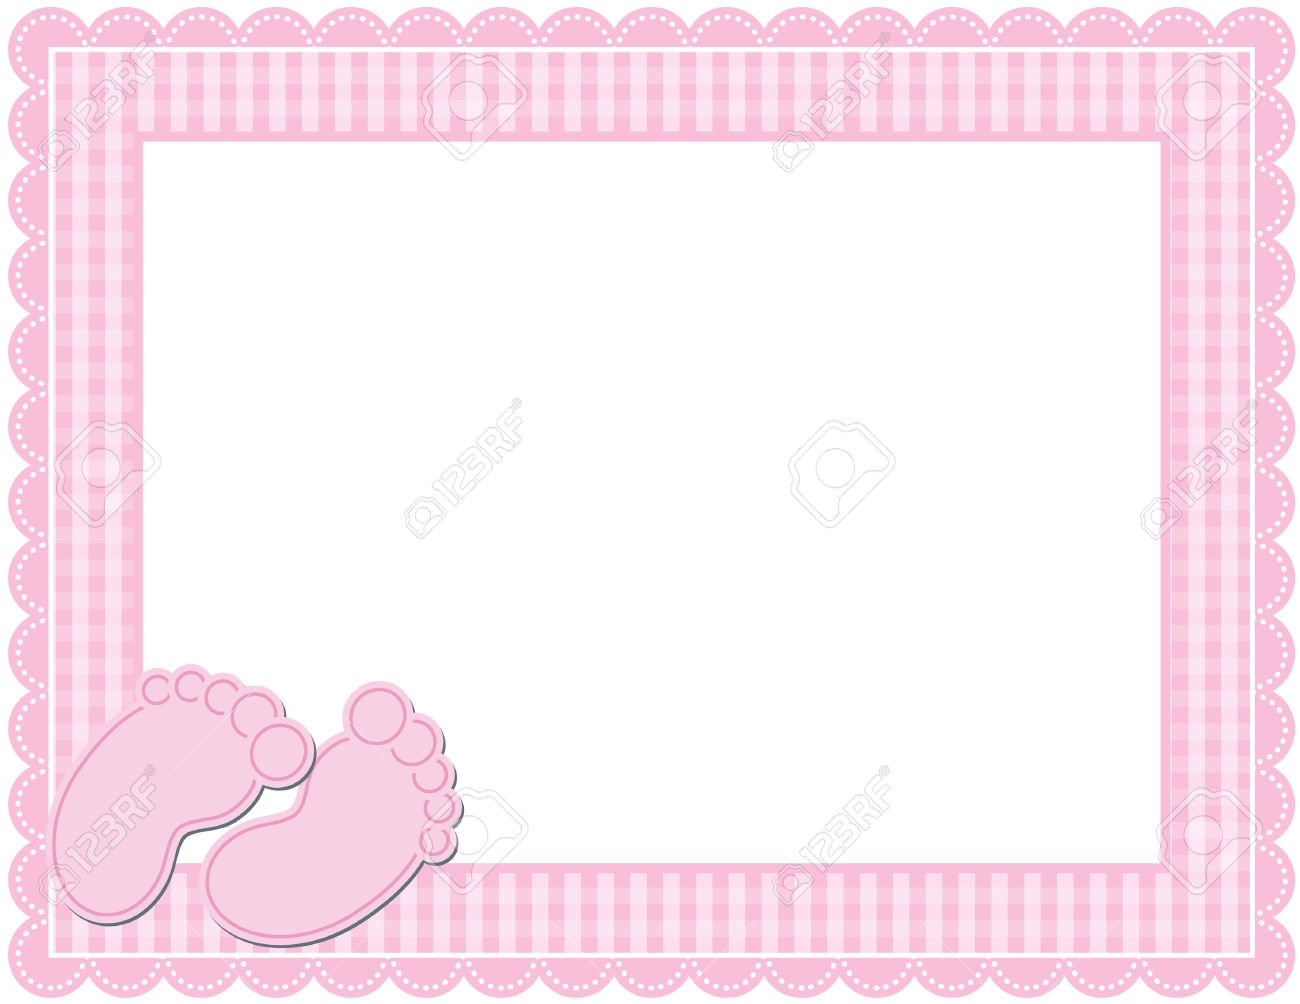 Baby girl clipart border image library stock Baby girl shower border clipart - ClipartFest image library stock